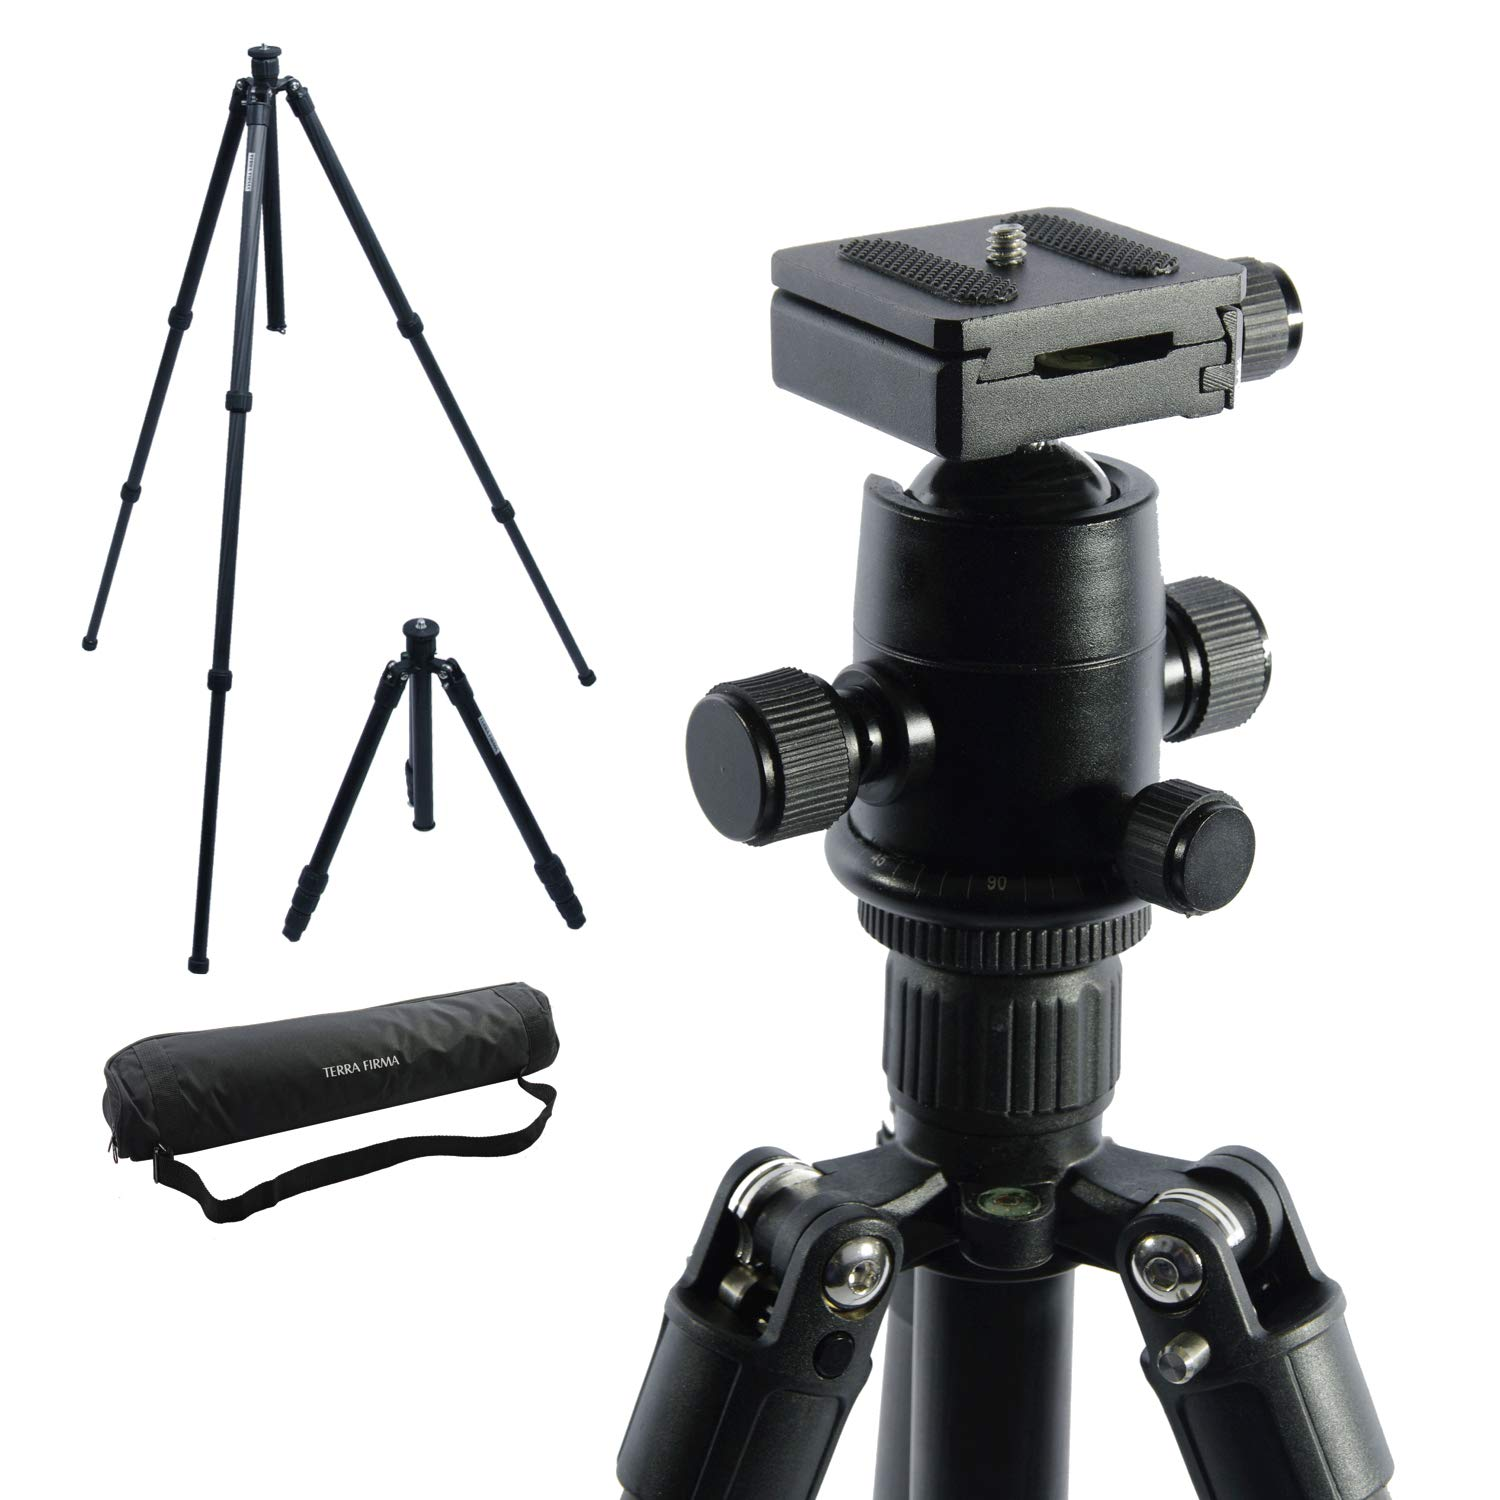 TERRA FIRMA TRIPODS T-CF300-BH280 Carbon Fiber 3 Section Tripod Leg Set with Ball Head BH280, Black